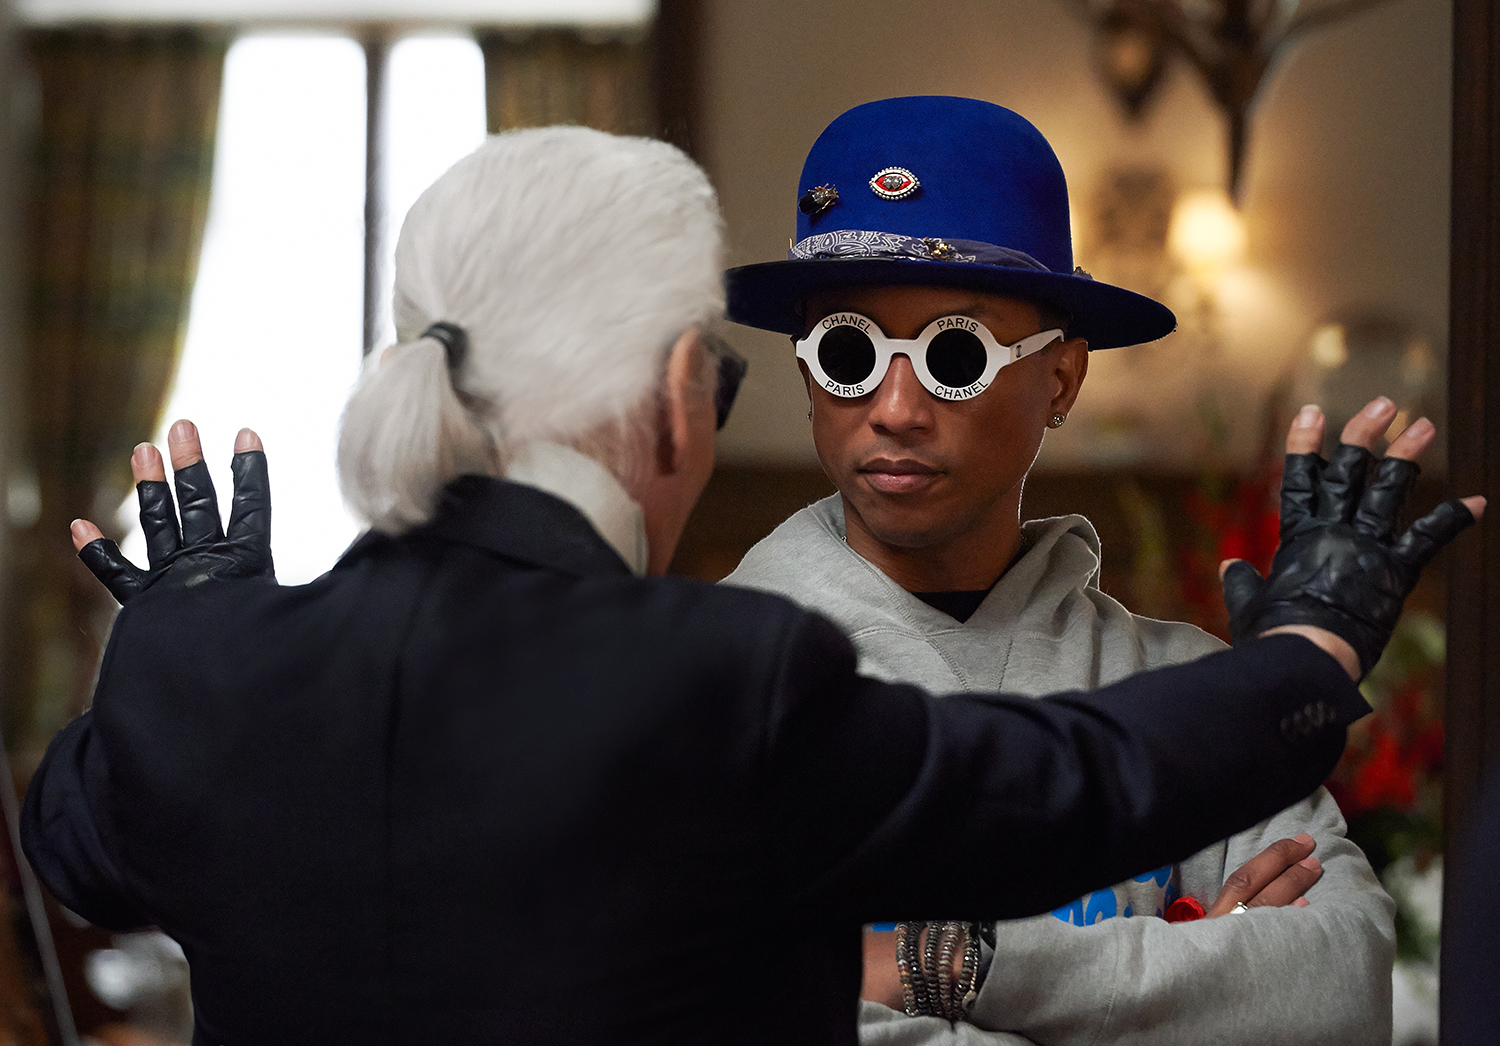 http://rocketmagazine.net/wp-content/uploads/2014/12/reincarnation-fashion-film-video-karl-lagerfeld-chanel-pharrell.jpg